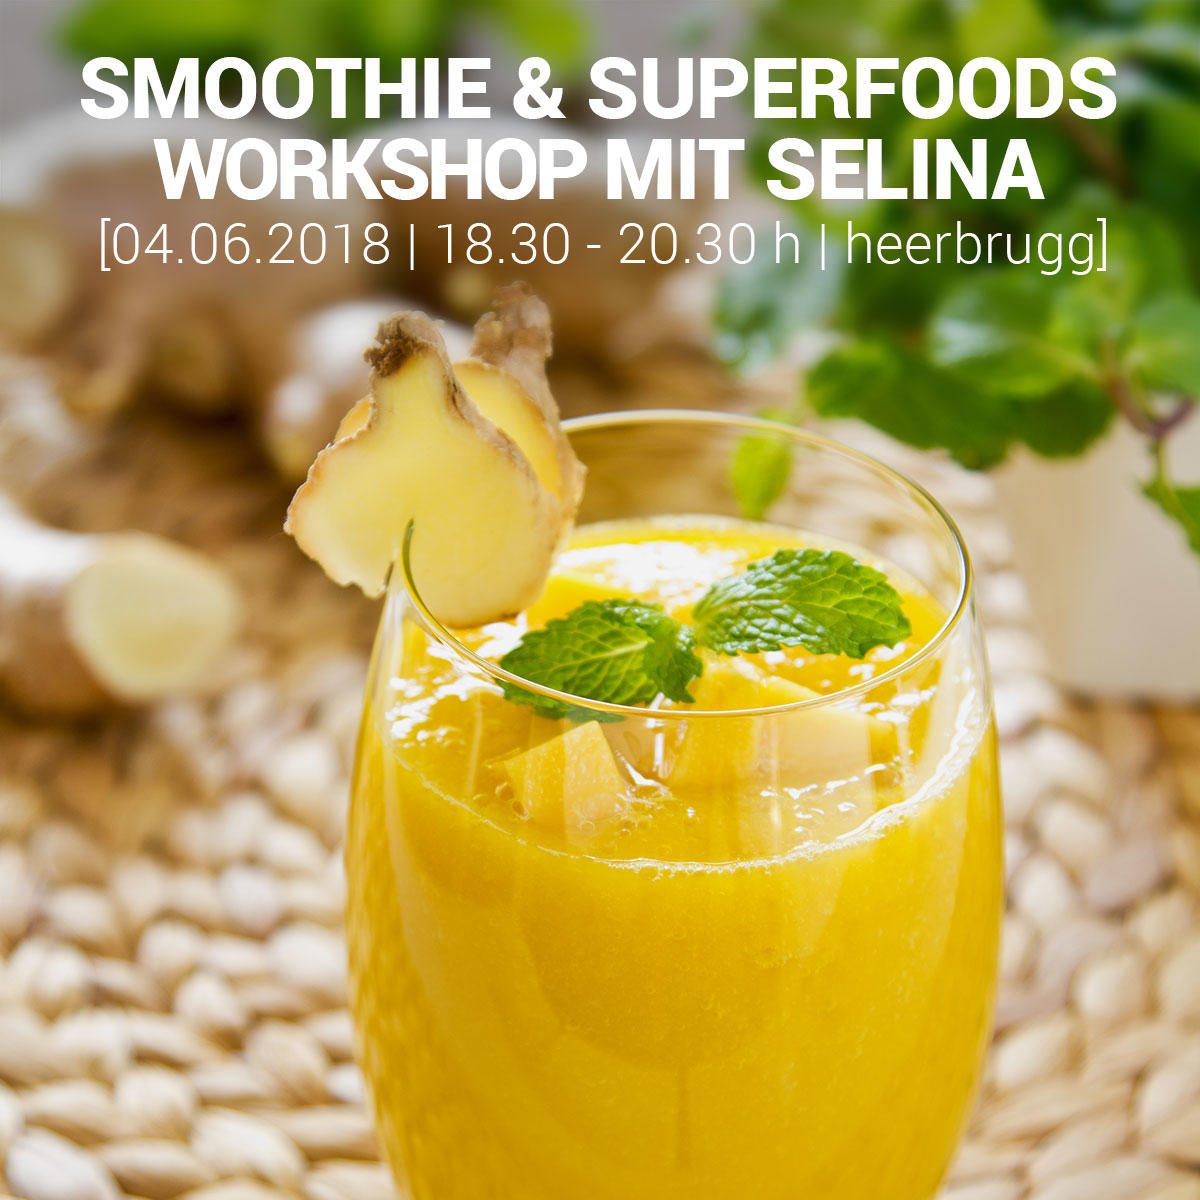 SMOOTHIE & SUPERFOODS WORKSHOP